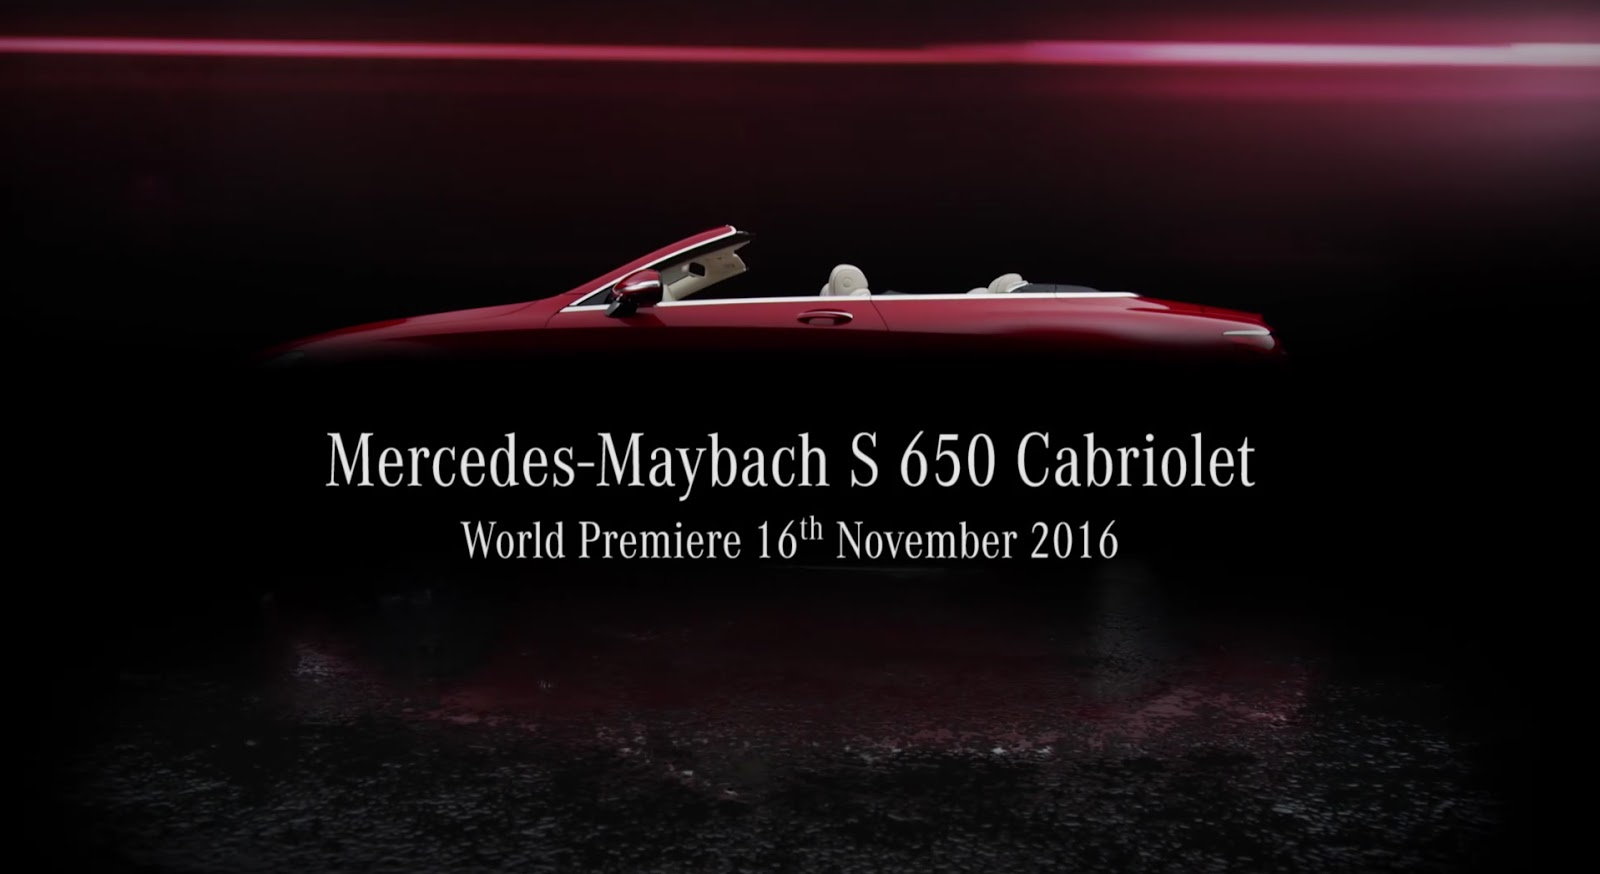 Scaldarsi motors maybach based 1 5 million emperor i is a sight to - New Exclusive Mercedes Maybach S650 Cabriolet Coming To La Auto Show